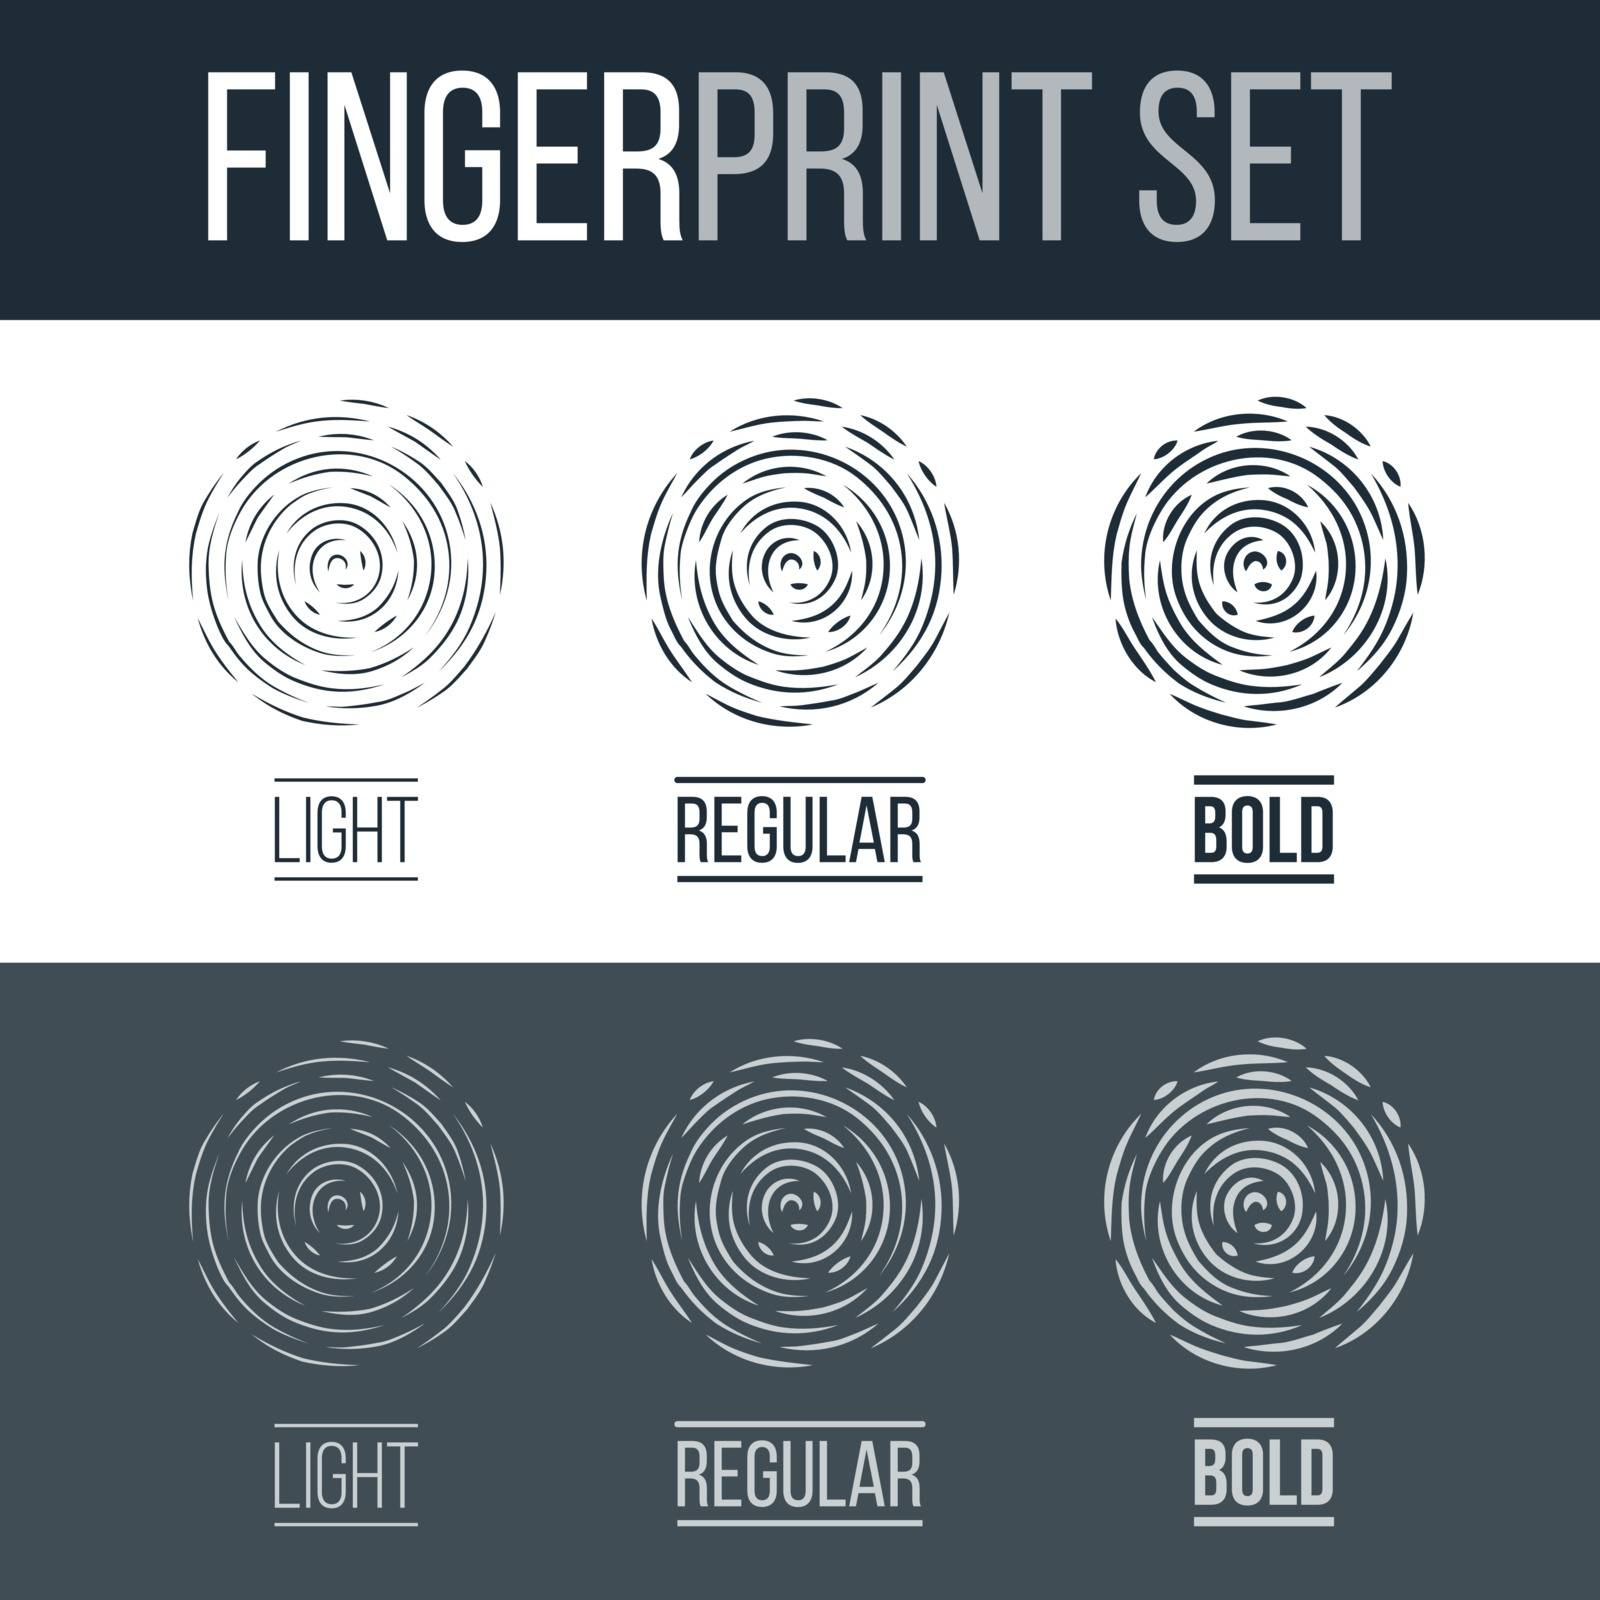 Abstract Fingerprints Set Print for Identification Authorization System on Dark and White Background